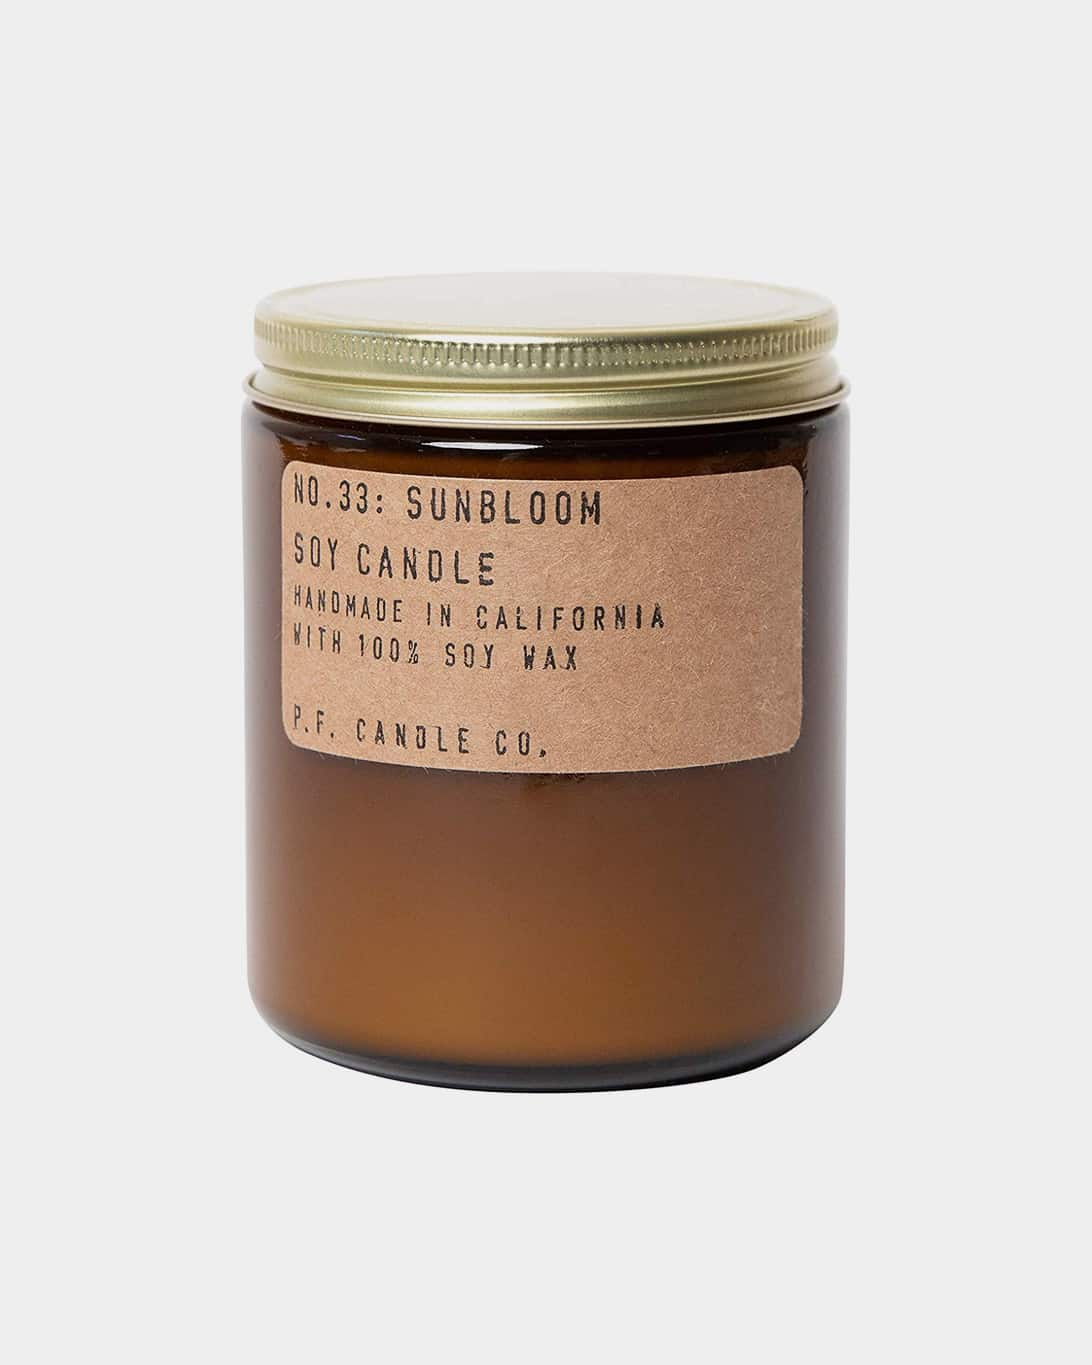 A jarred PF Candle Sunbloom Candle